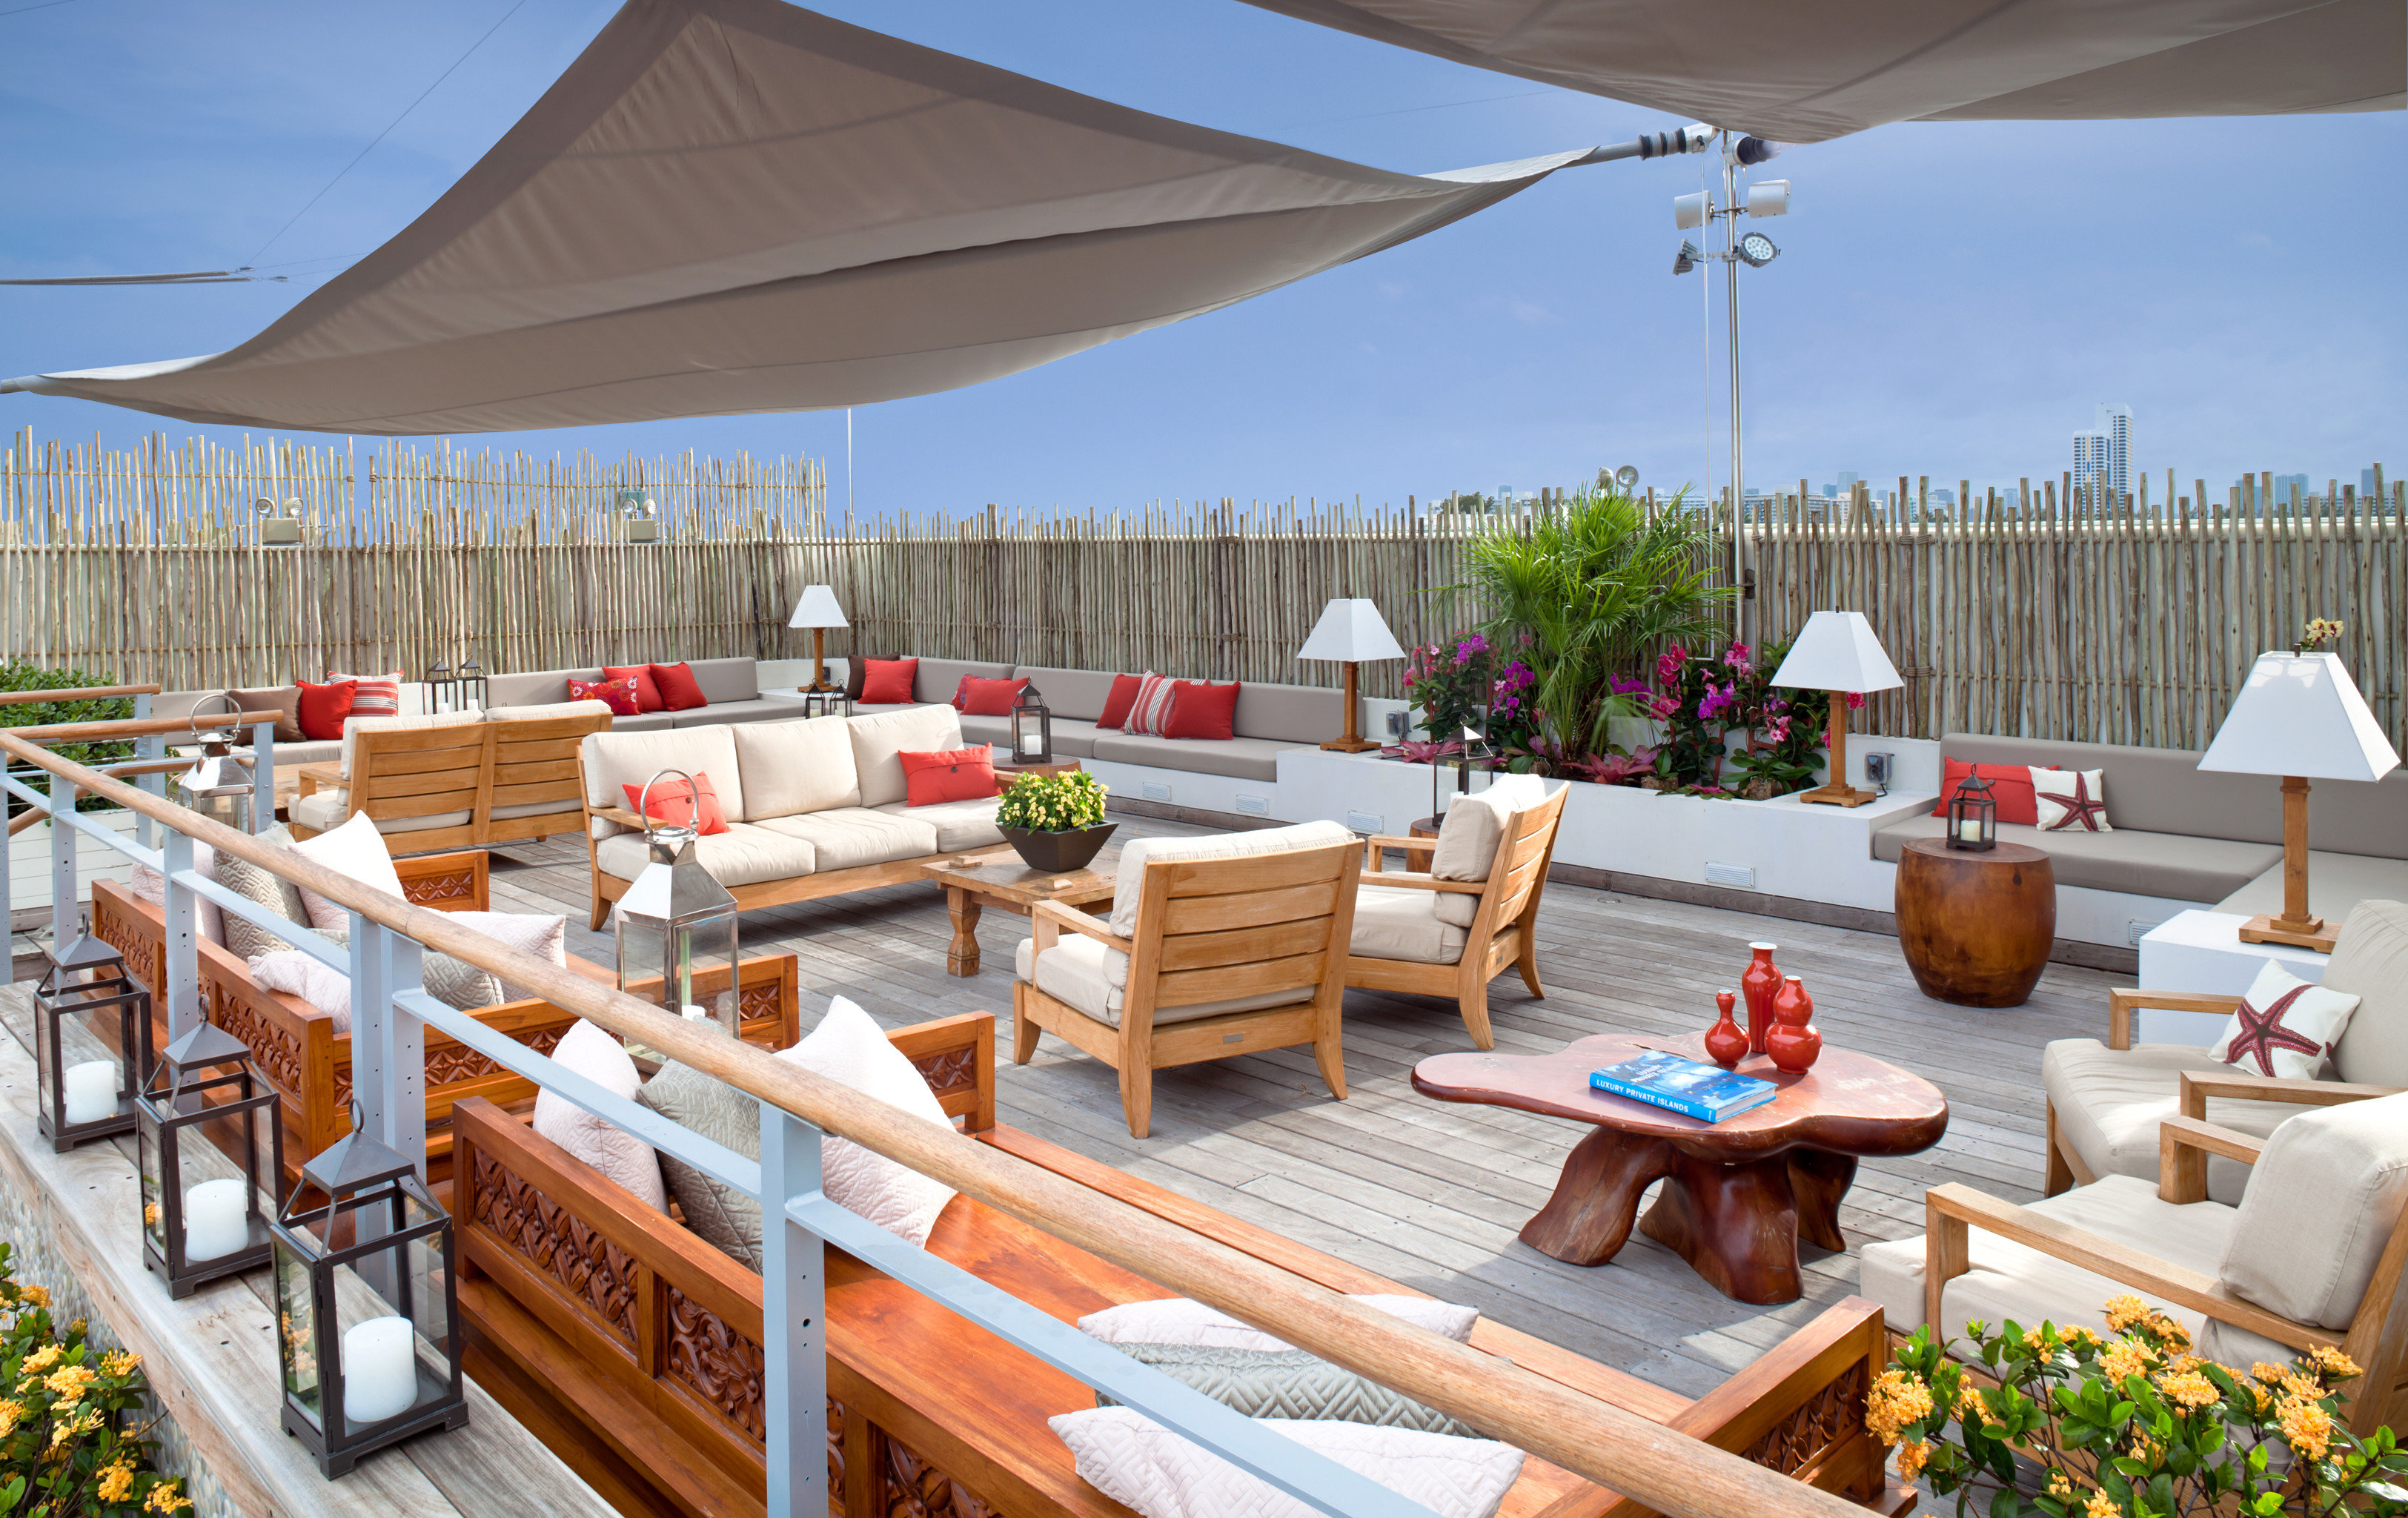 Hotels Lounge Patio Resort Rooftop sky chair wooden cottage outdoor structure estate Villa furniture